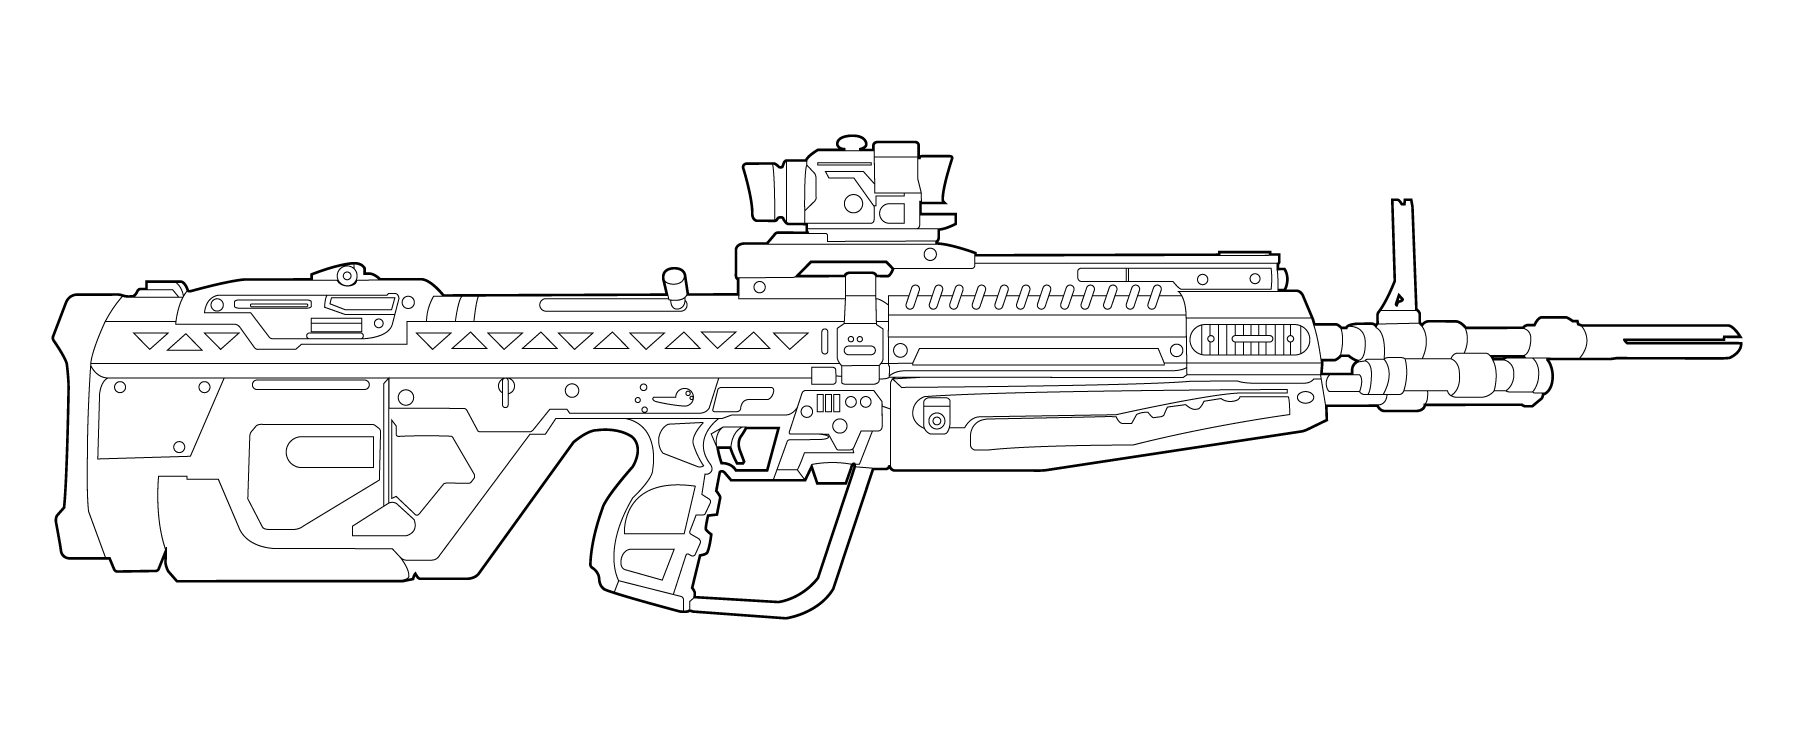 halo dmr blueprints Google Search